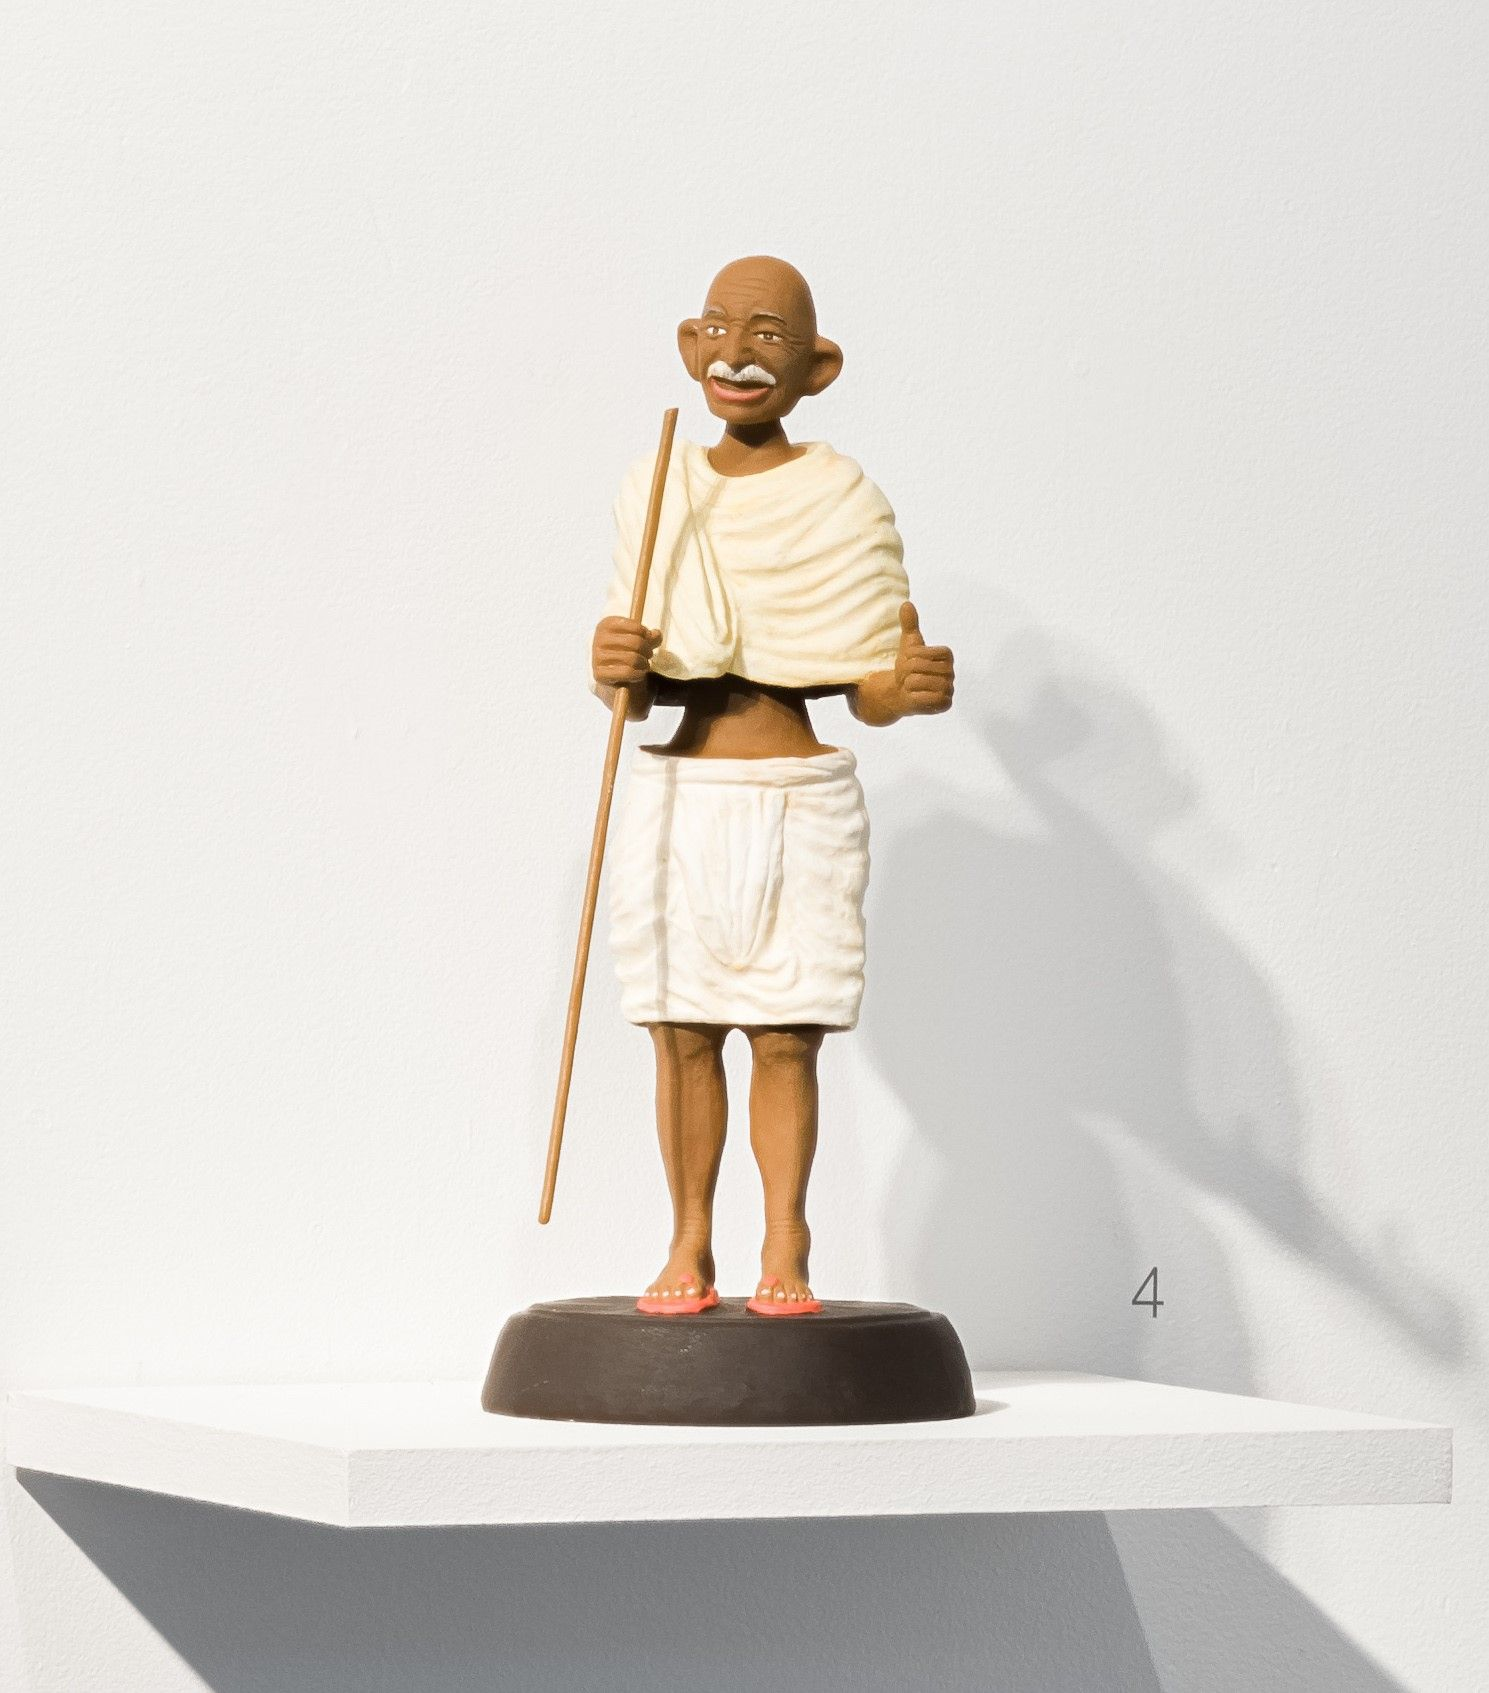 Debanjan Roy  Toy Gandhi 6 (Small Bobble Head)  2019  Clay, paper, cloth, and iron fibre  16 x 8 x 8 in.